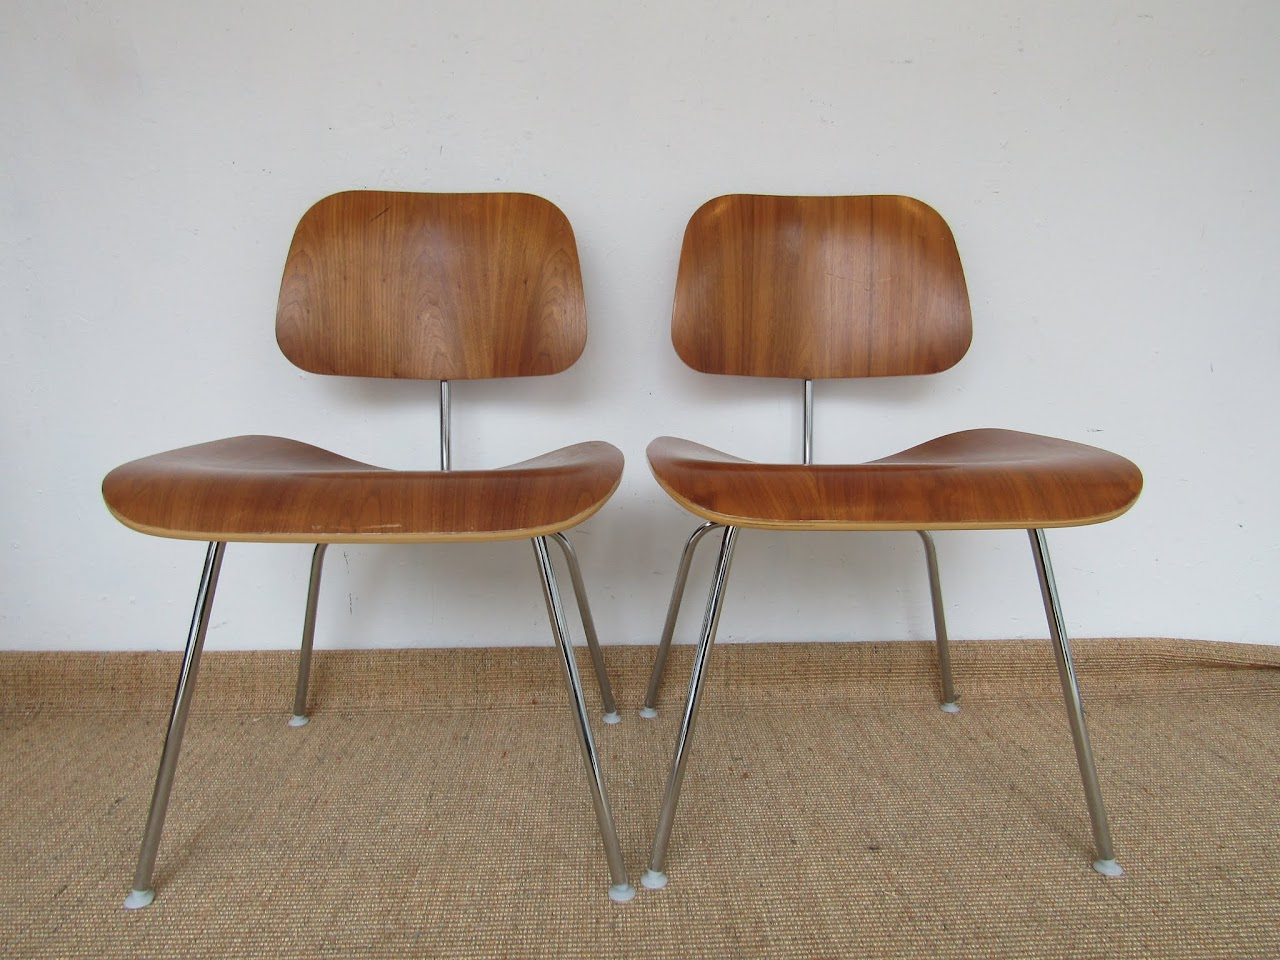 Eames Molded Plywood Chair Pair (8)